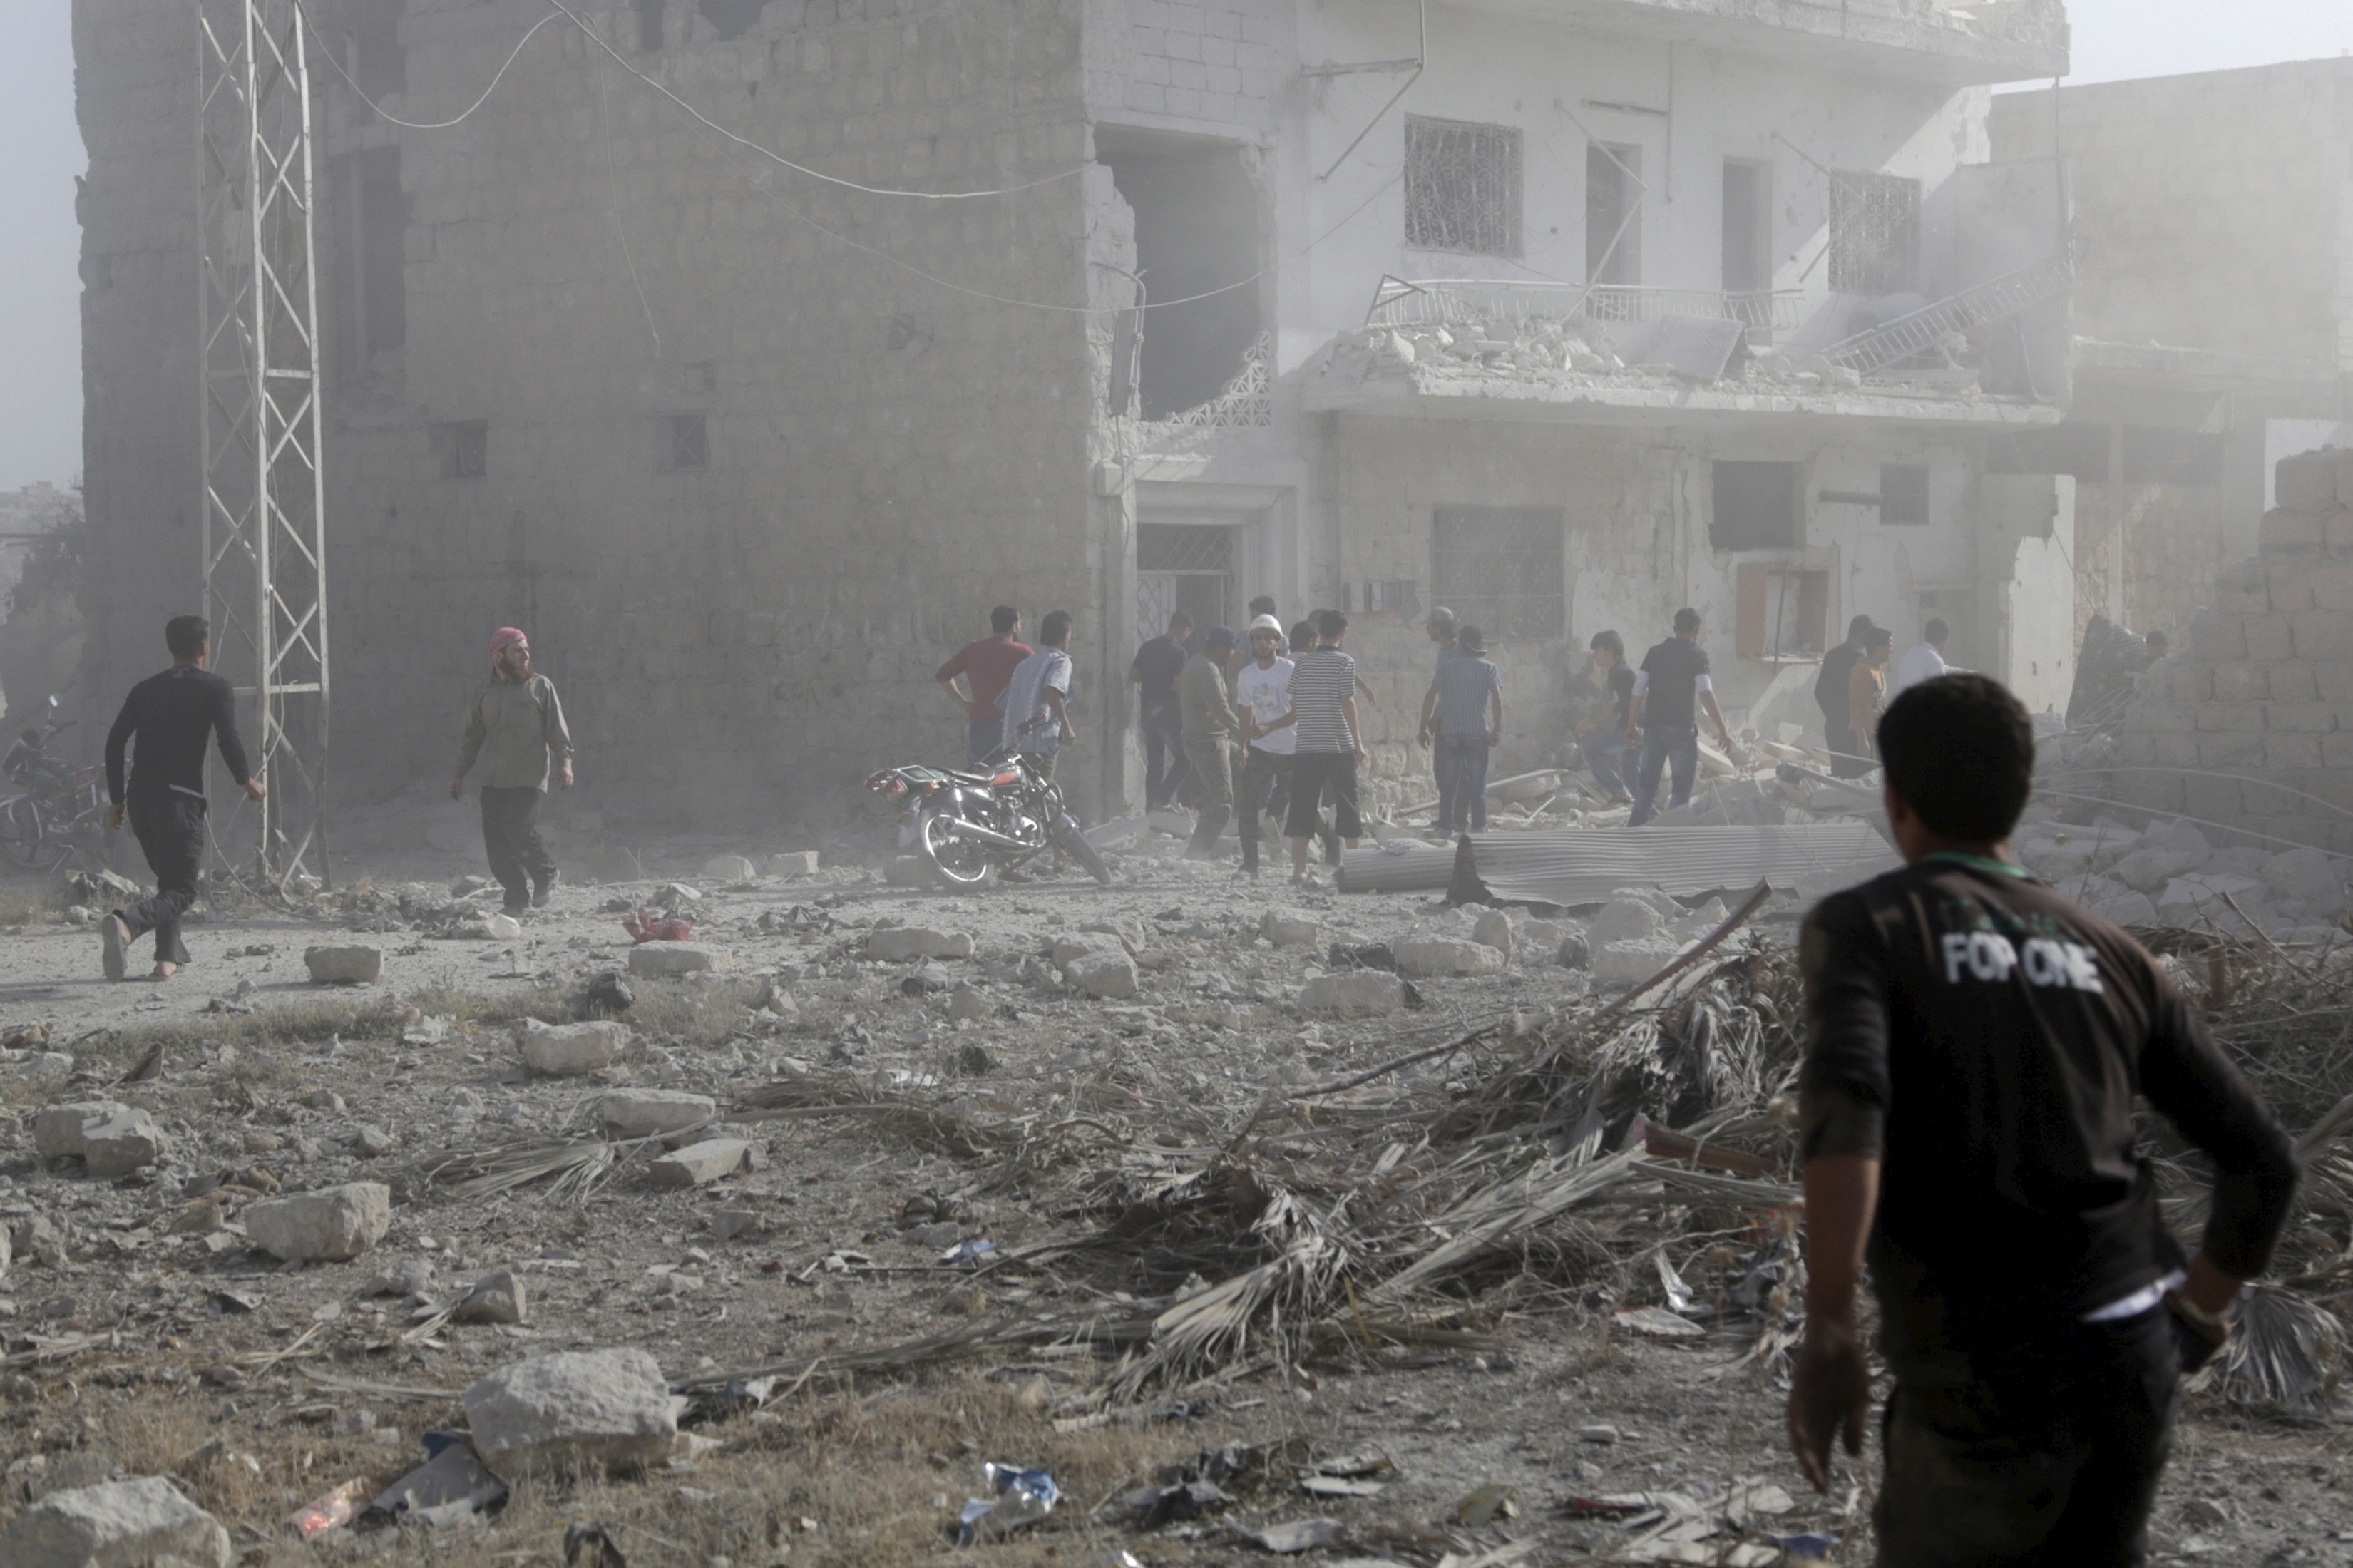 Residents inspect a site damaged by what activists said was a barrel bomb dropped by forces loyal to Syria's president Bashar Al-Assad in Maarat Al-Nouman, south of Idlib, June 8, 2015.